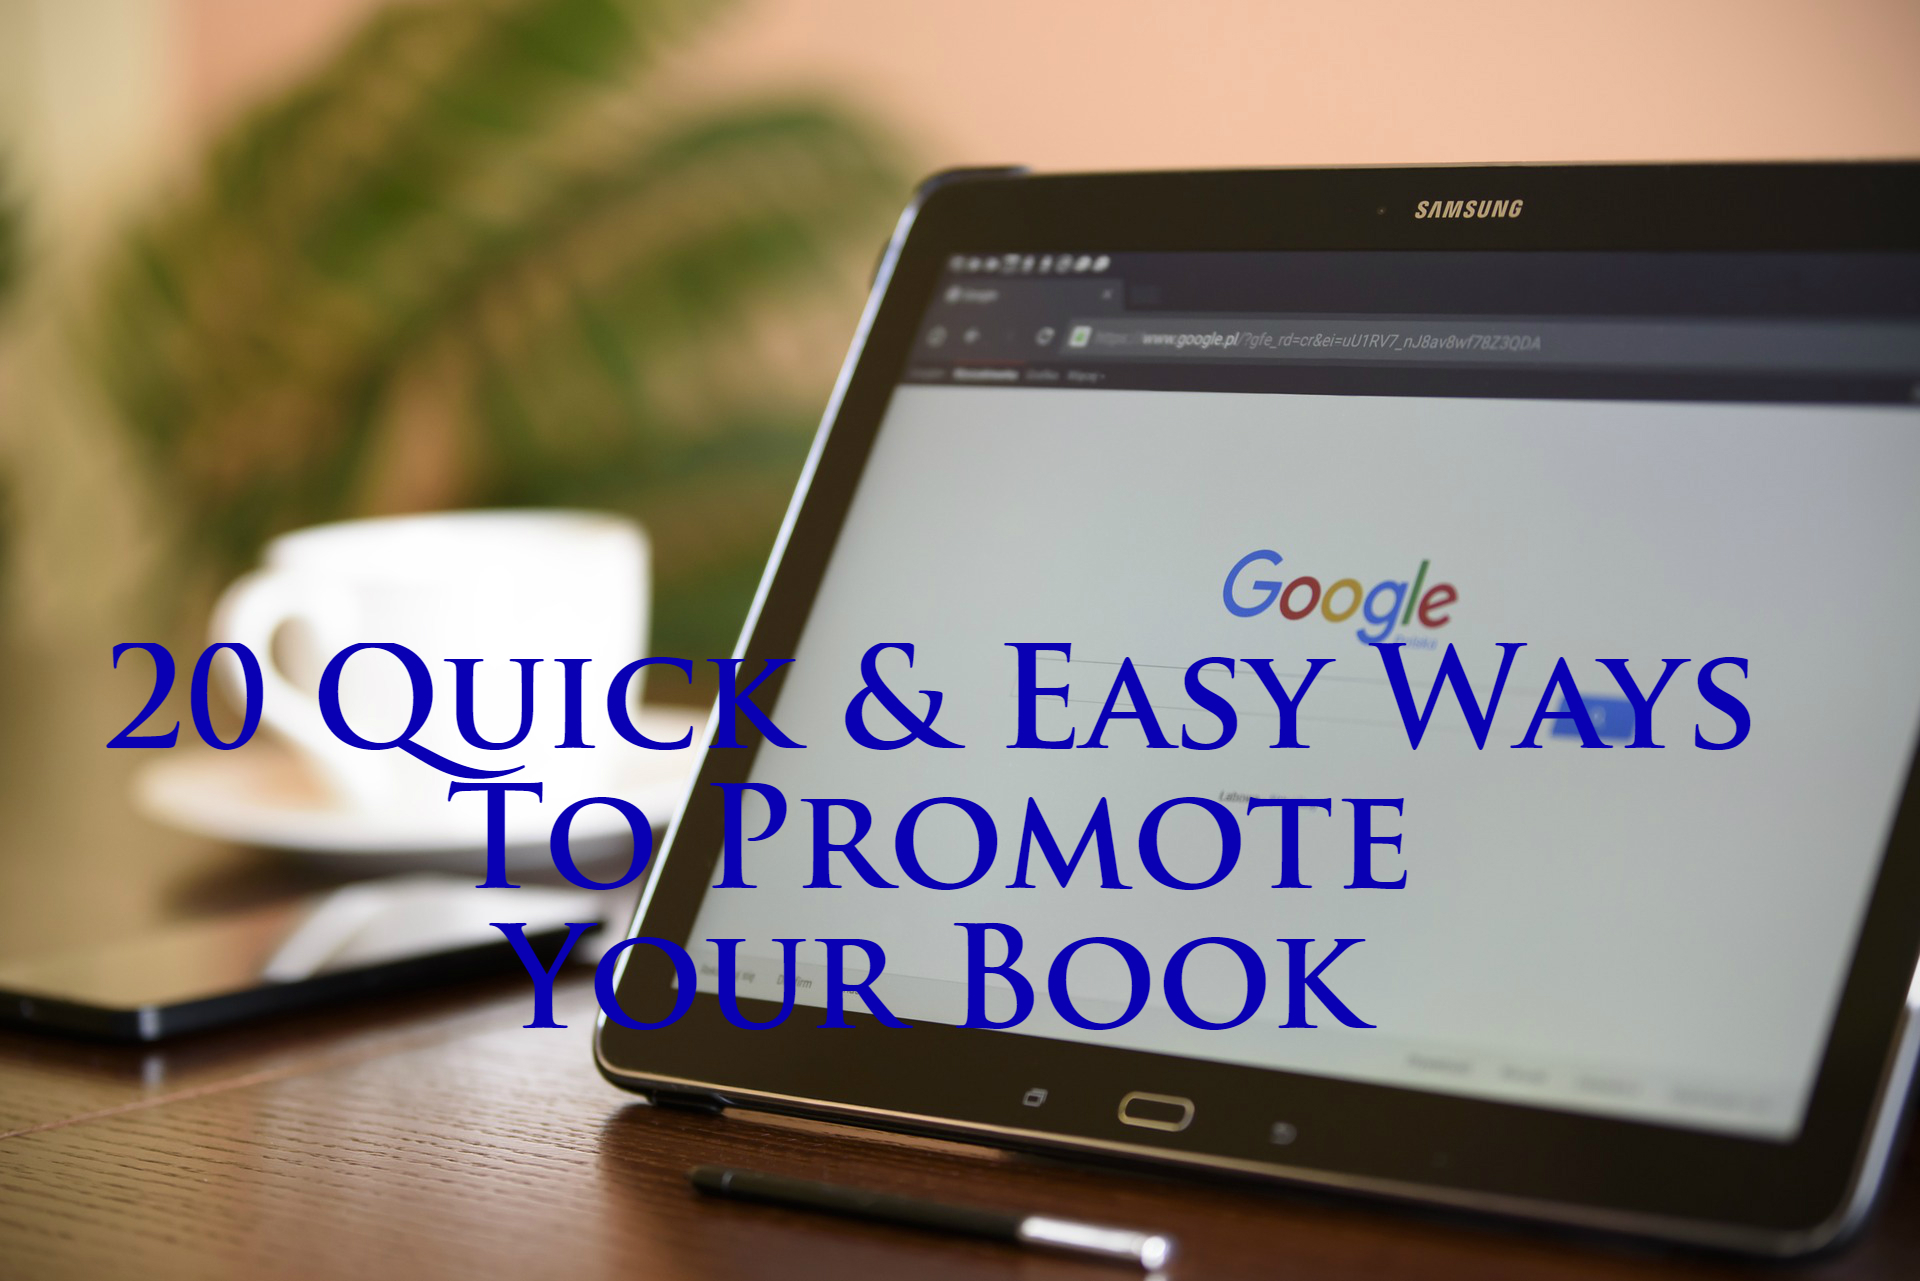 20 Quick and Easy Ways To Promote Your Book